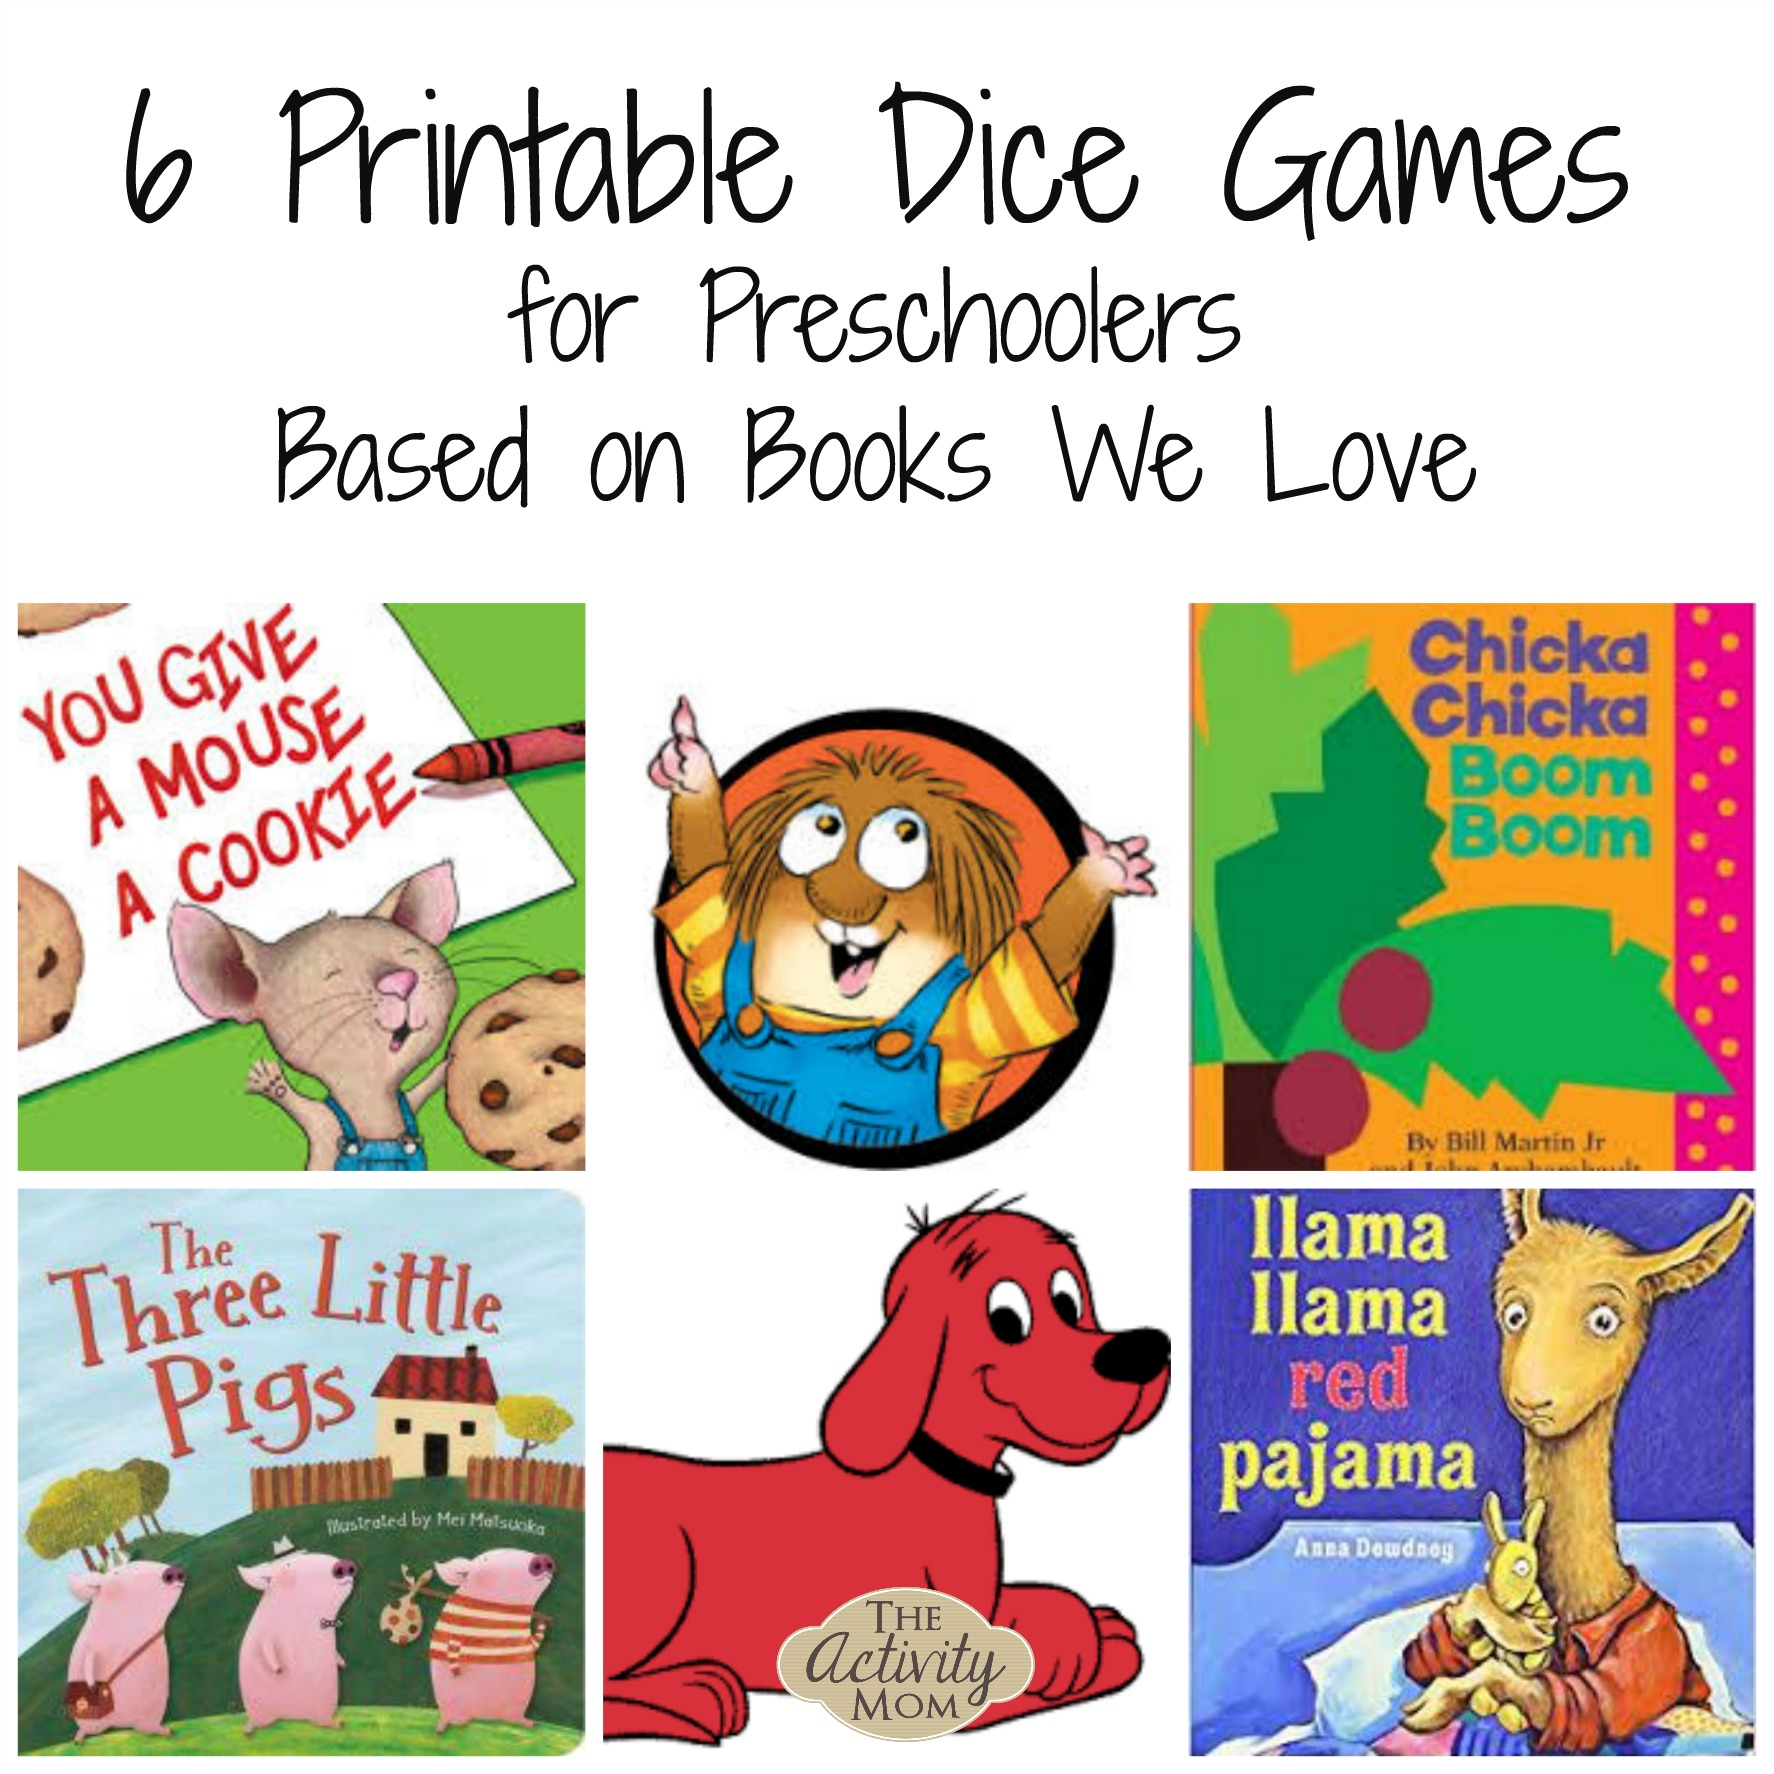 6 Printable Dice Games Based on Books